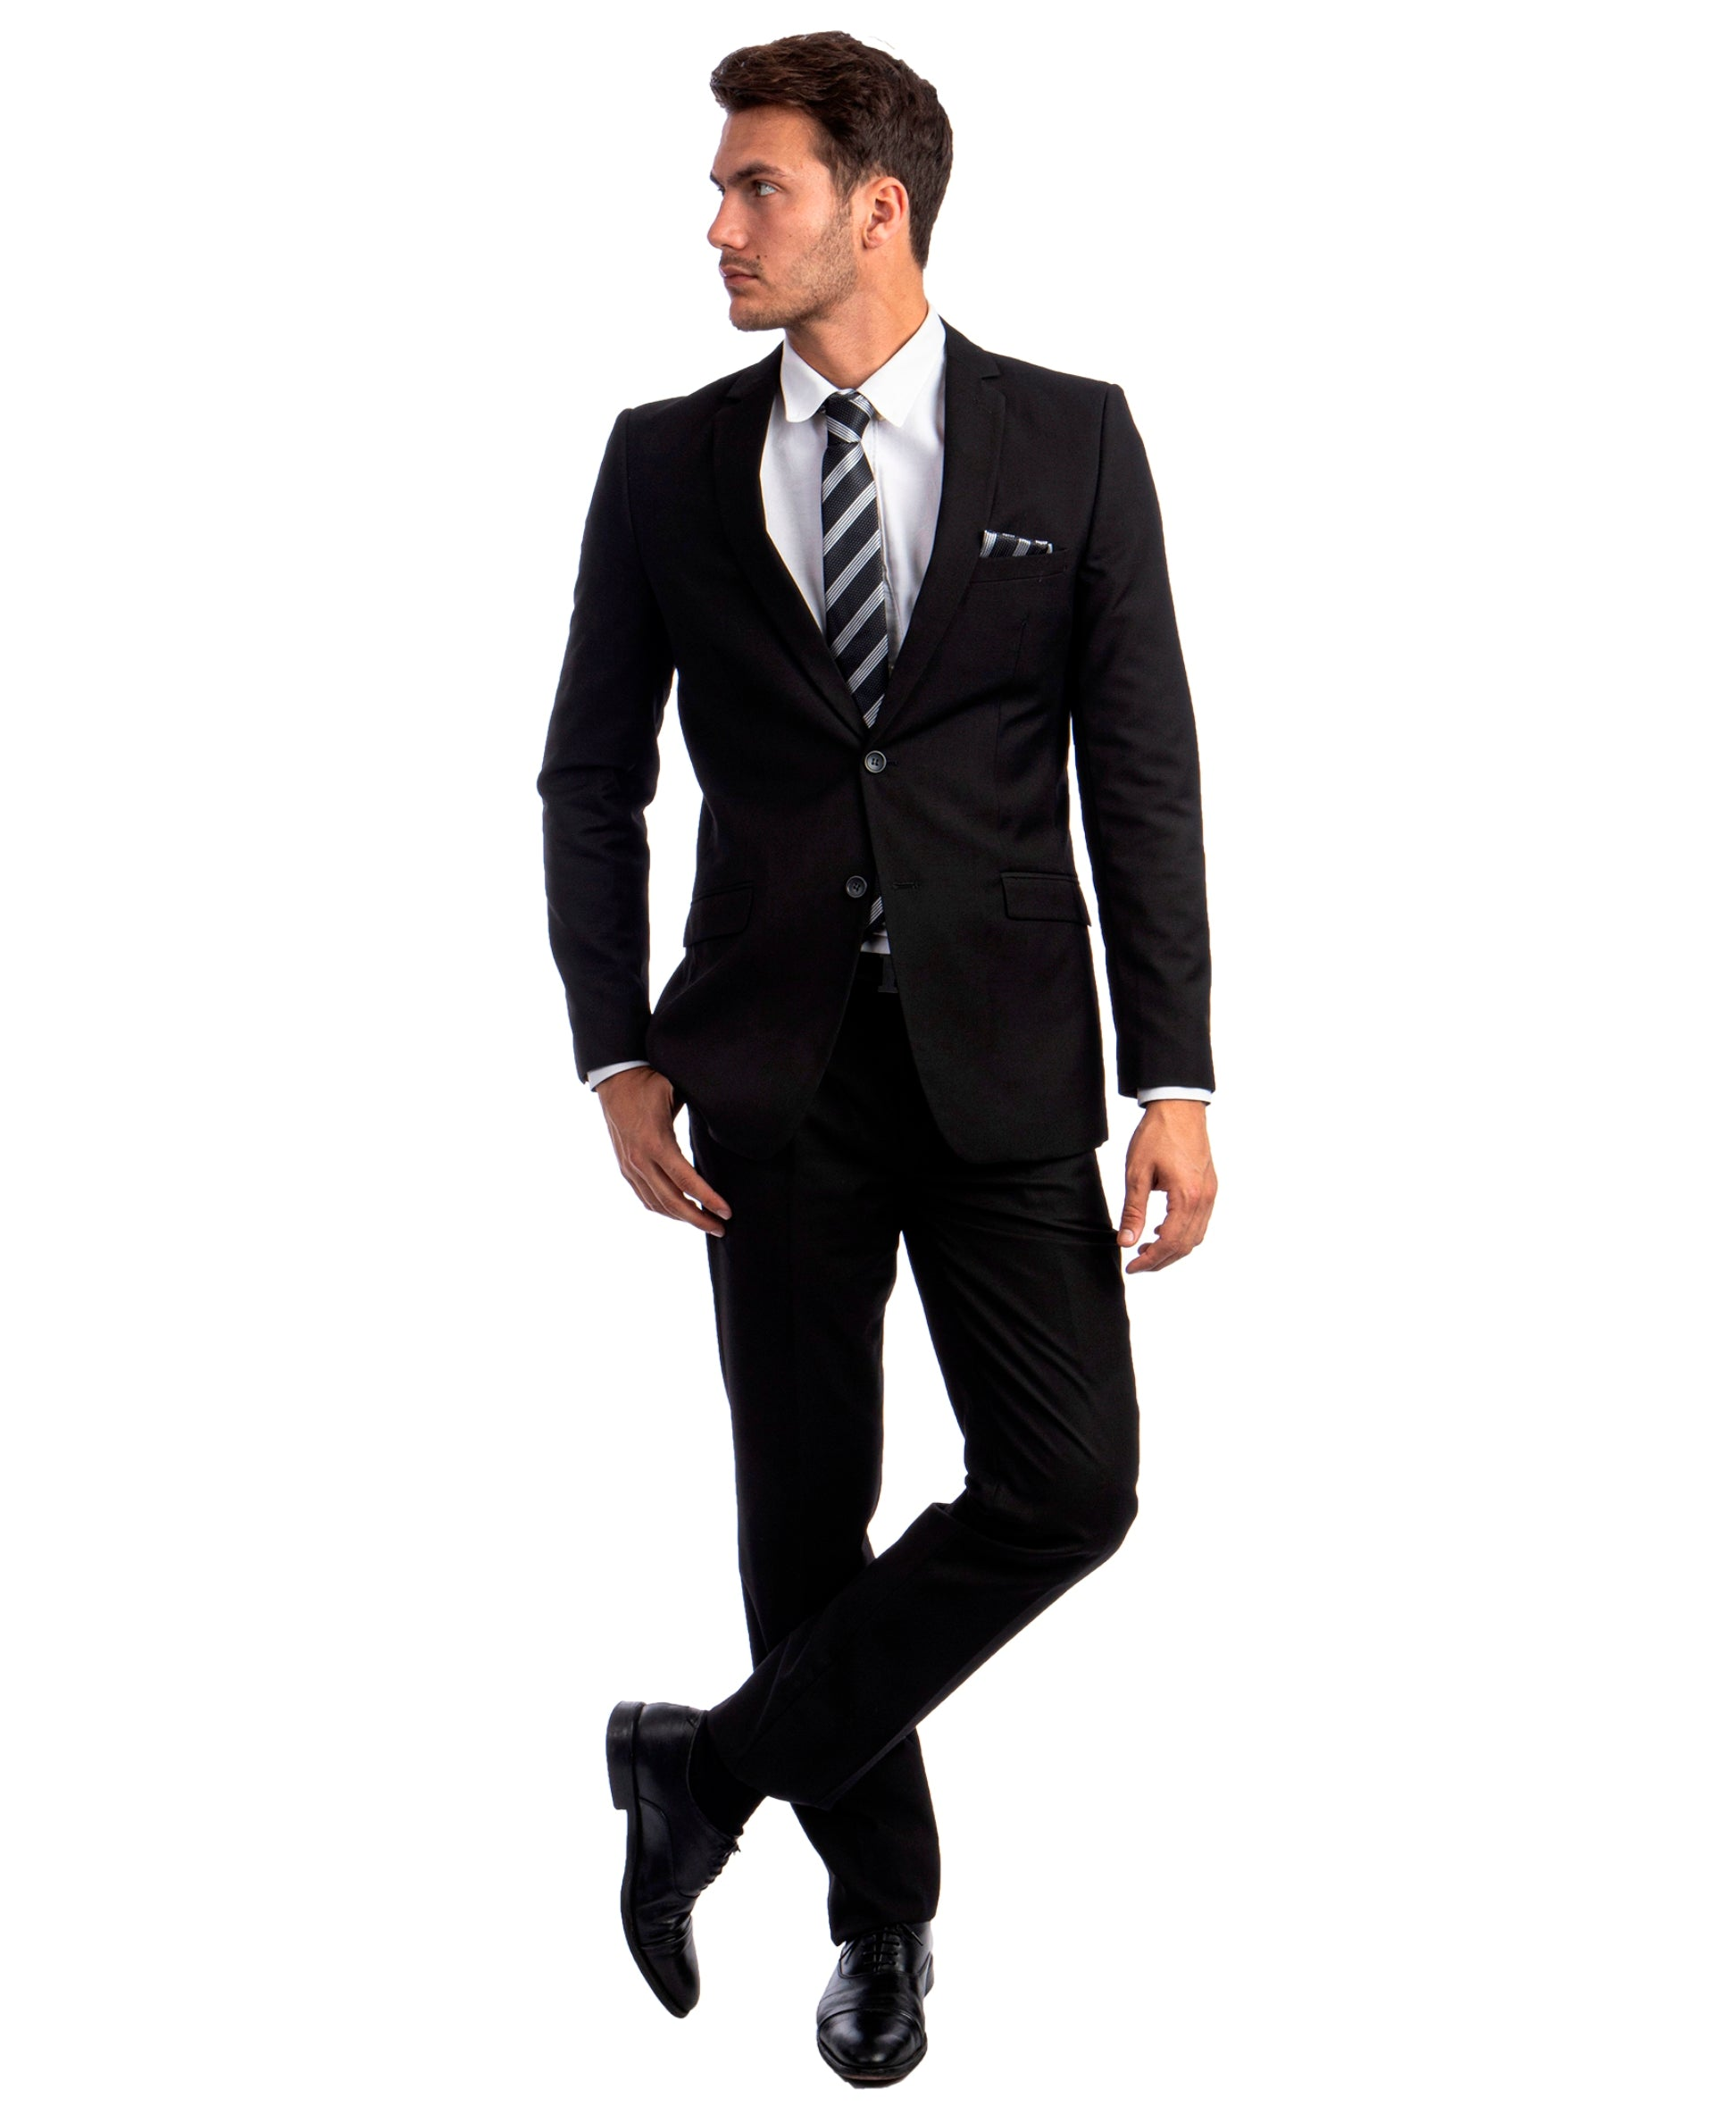 Black Suit For Men Formal Suits For All Ocassions